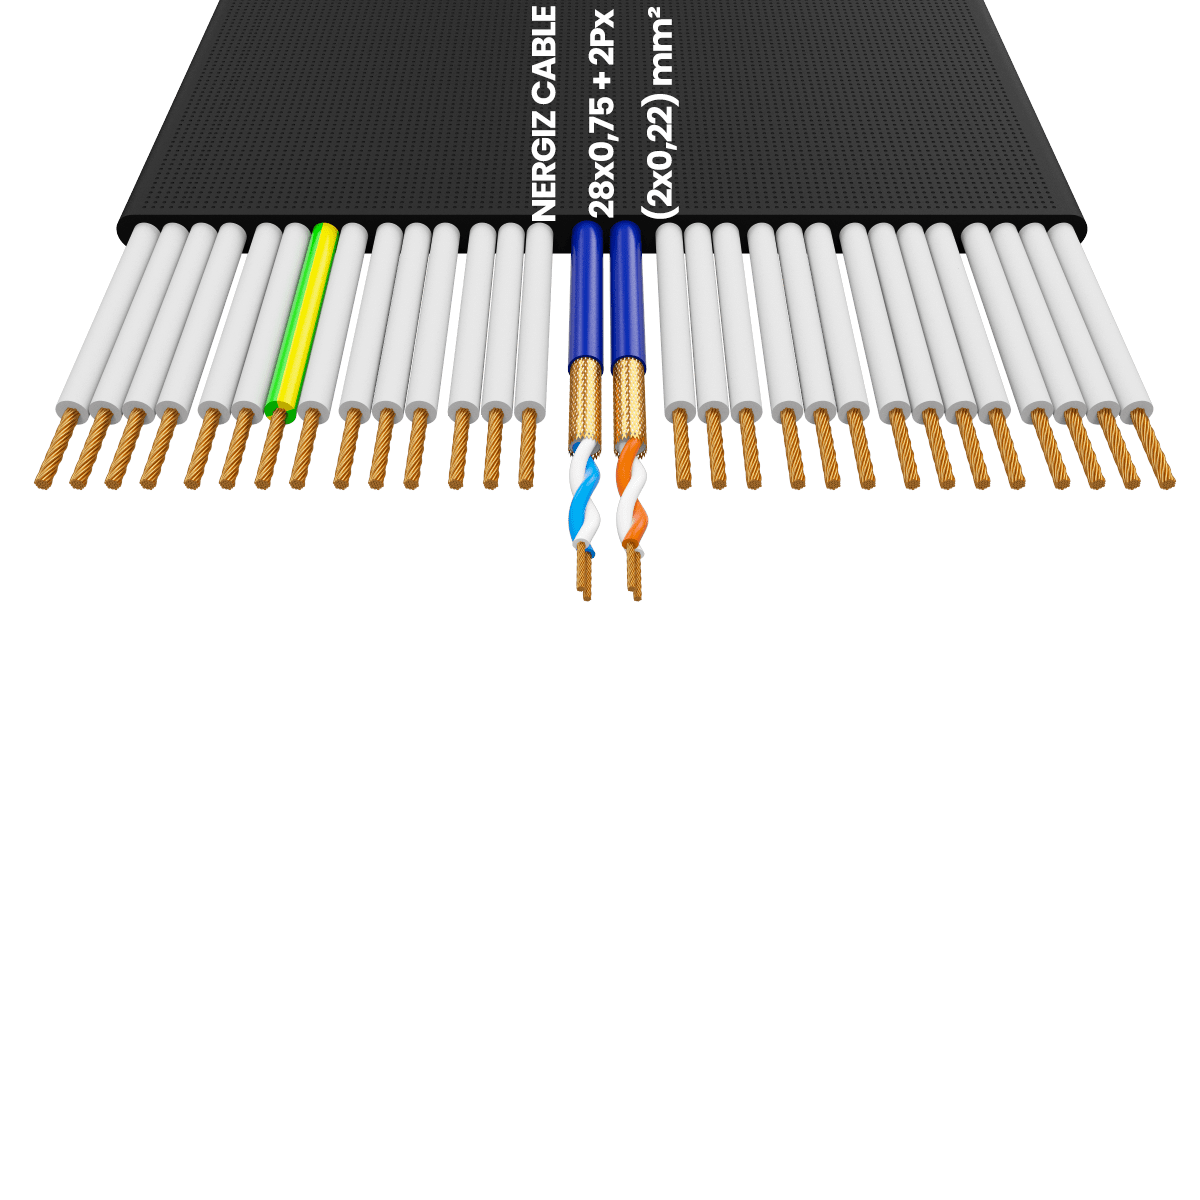 28x0.75 +2Px(2x0.22) mm² H05VVH6-F Foiled Elevator Cable